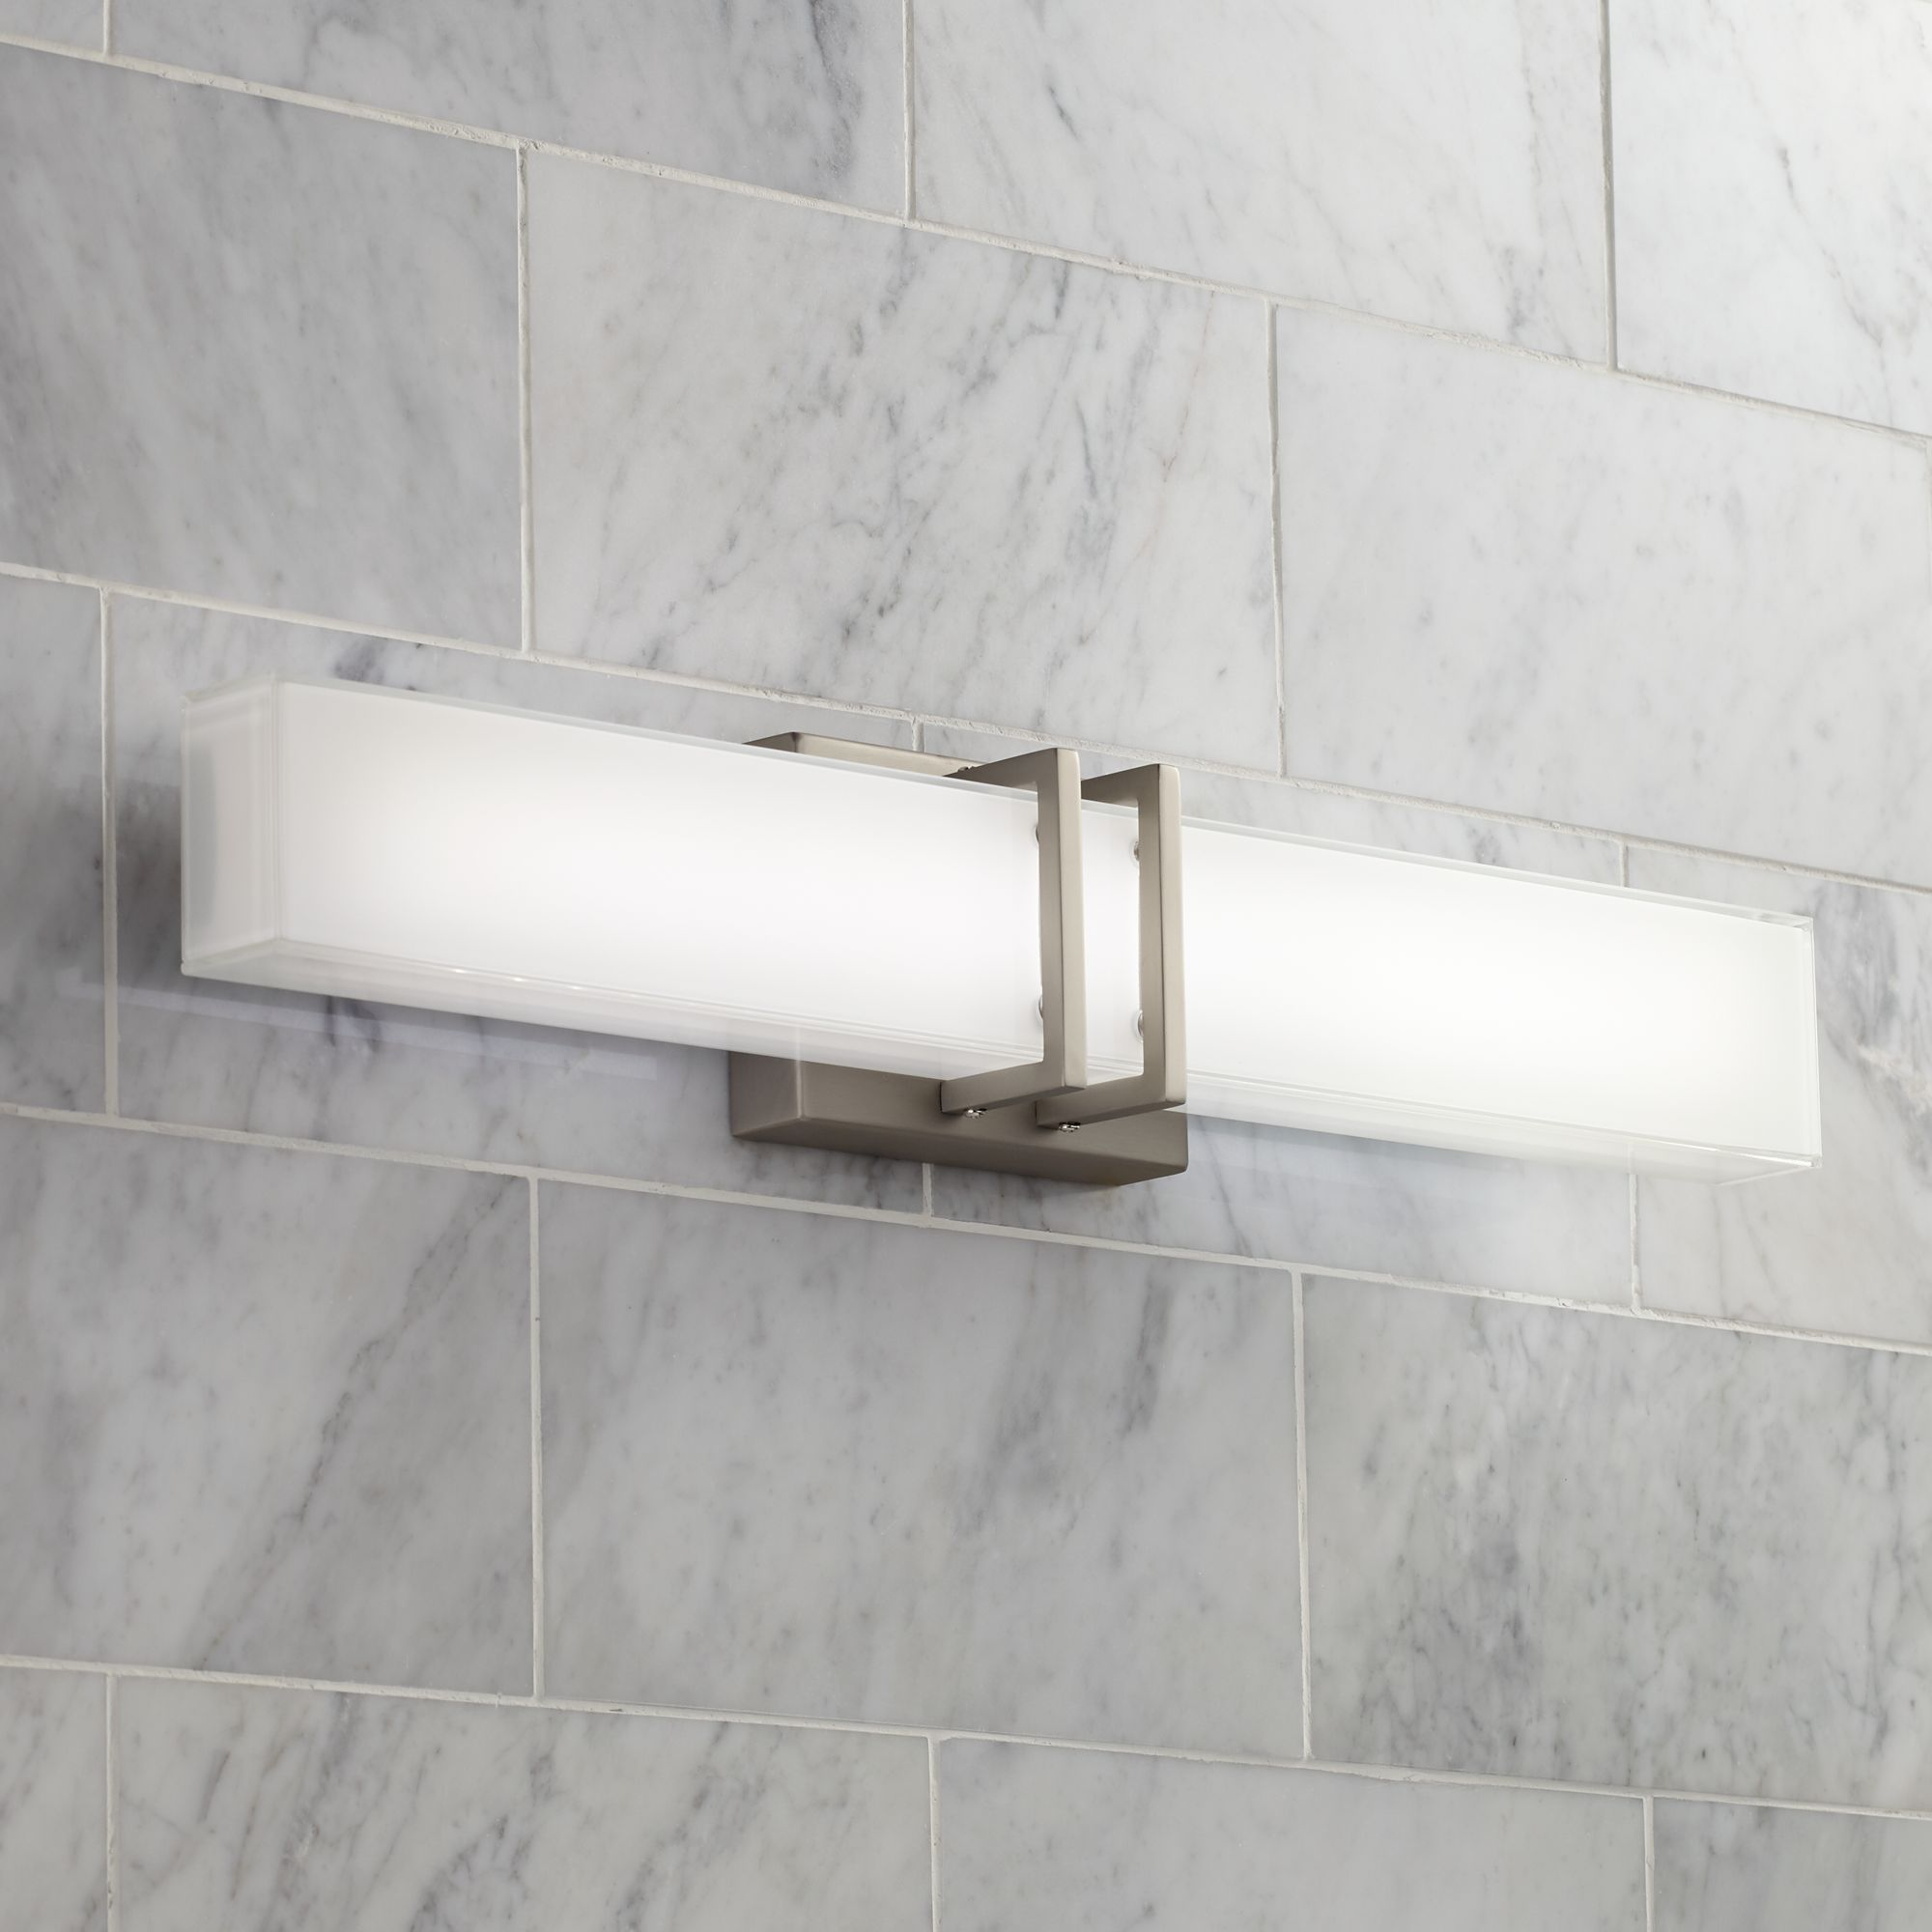 Led Bathroom Lighting possini euro exeter 24. possini euro exeter 24 EWIAIYQ